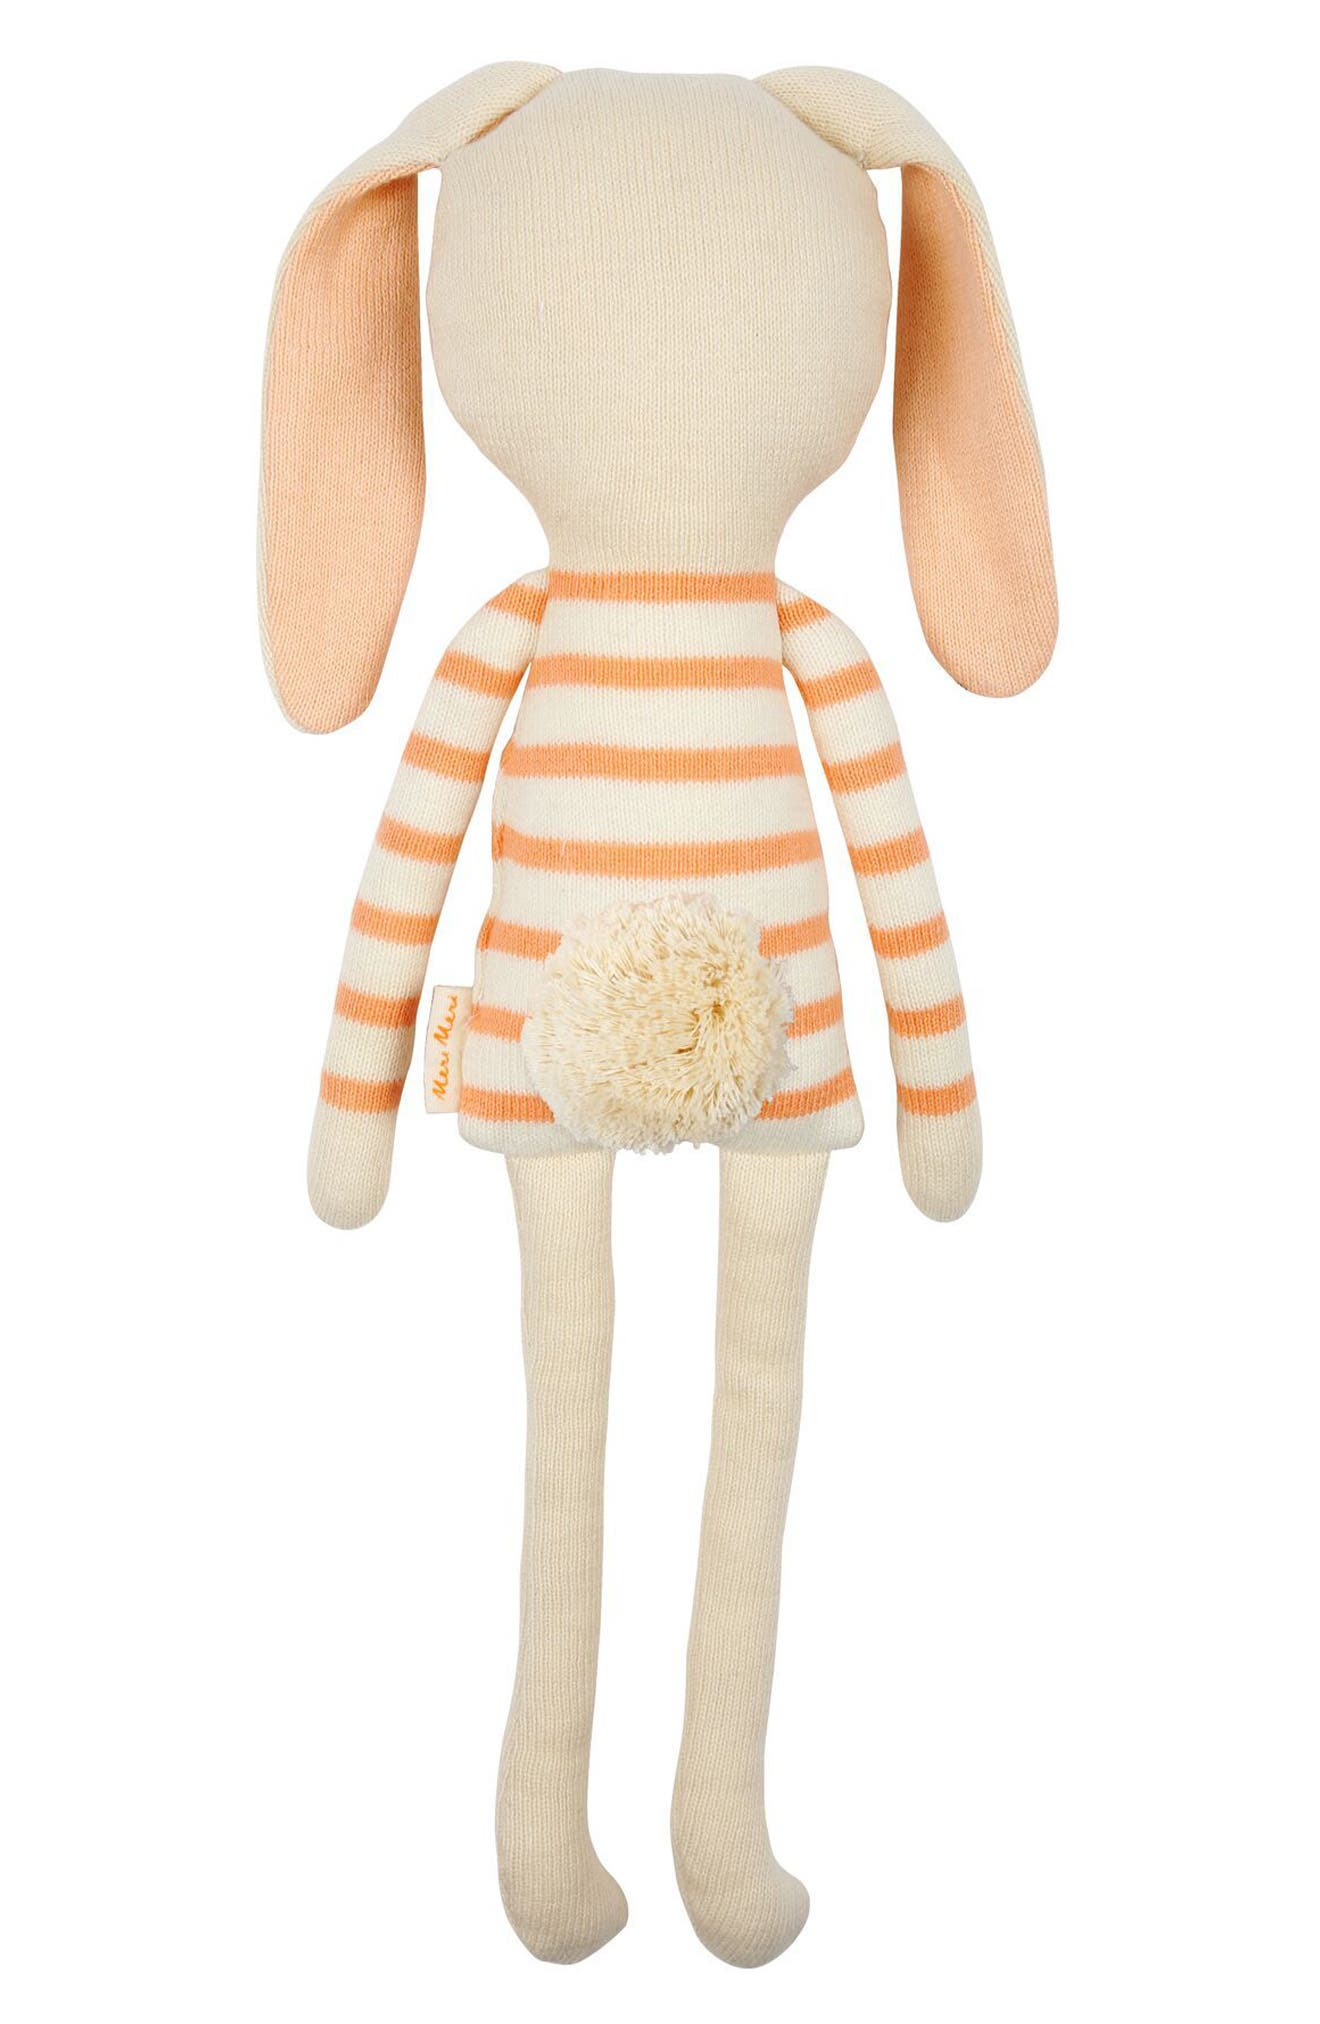 Small Stripe Sweater Organic Cotton Knit Bunny,                             Alternate thumbnail 2, color,                             Coral